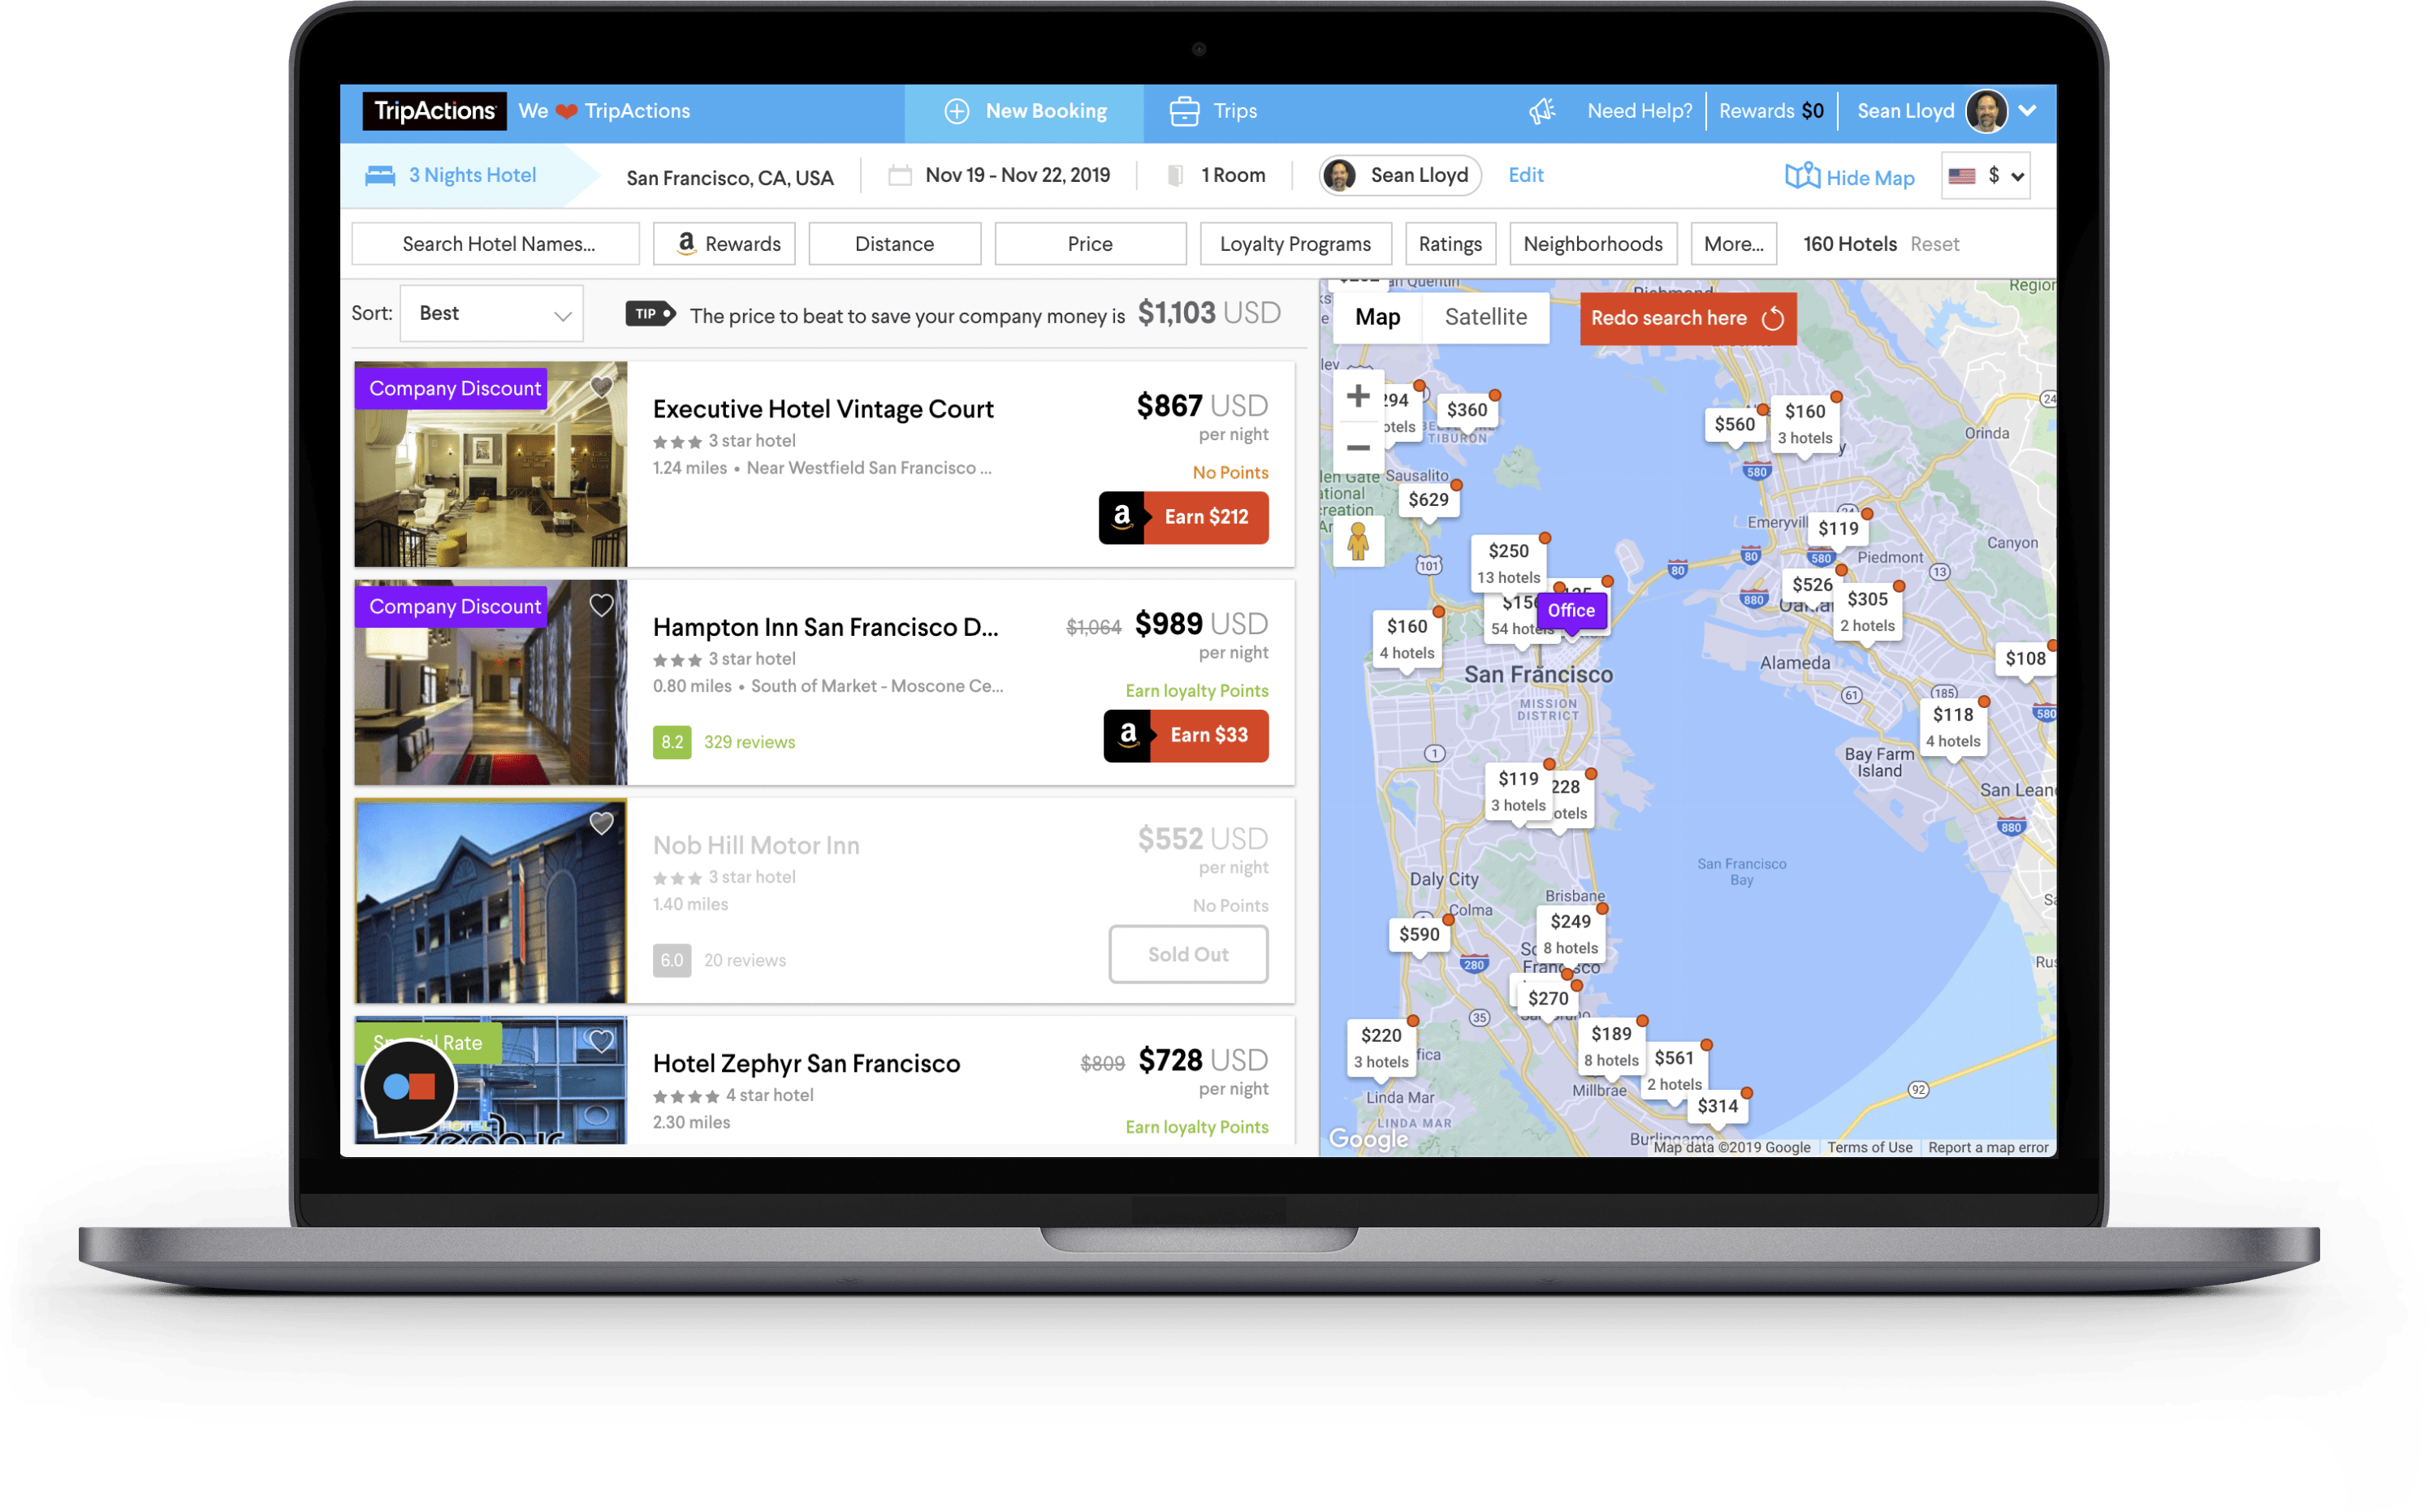 TripActions Product Screenshot - AI-driven, personalized search results